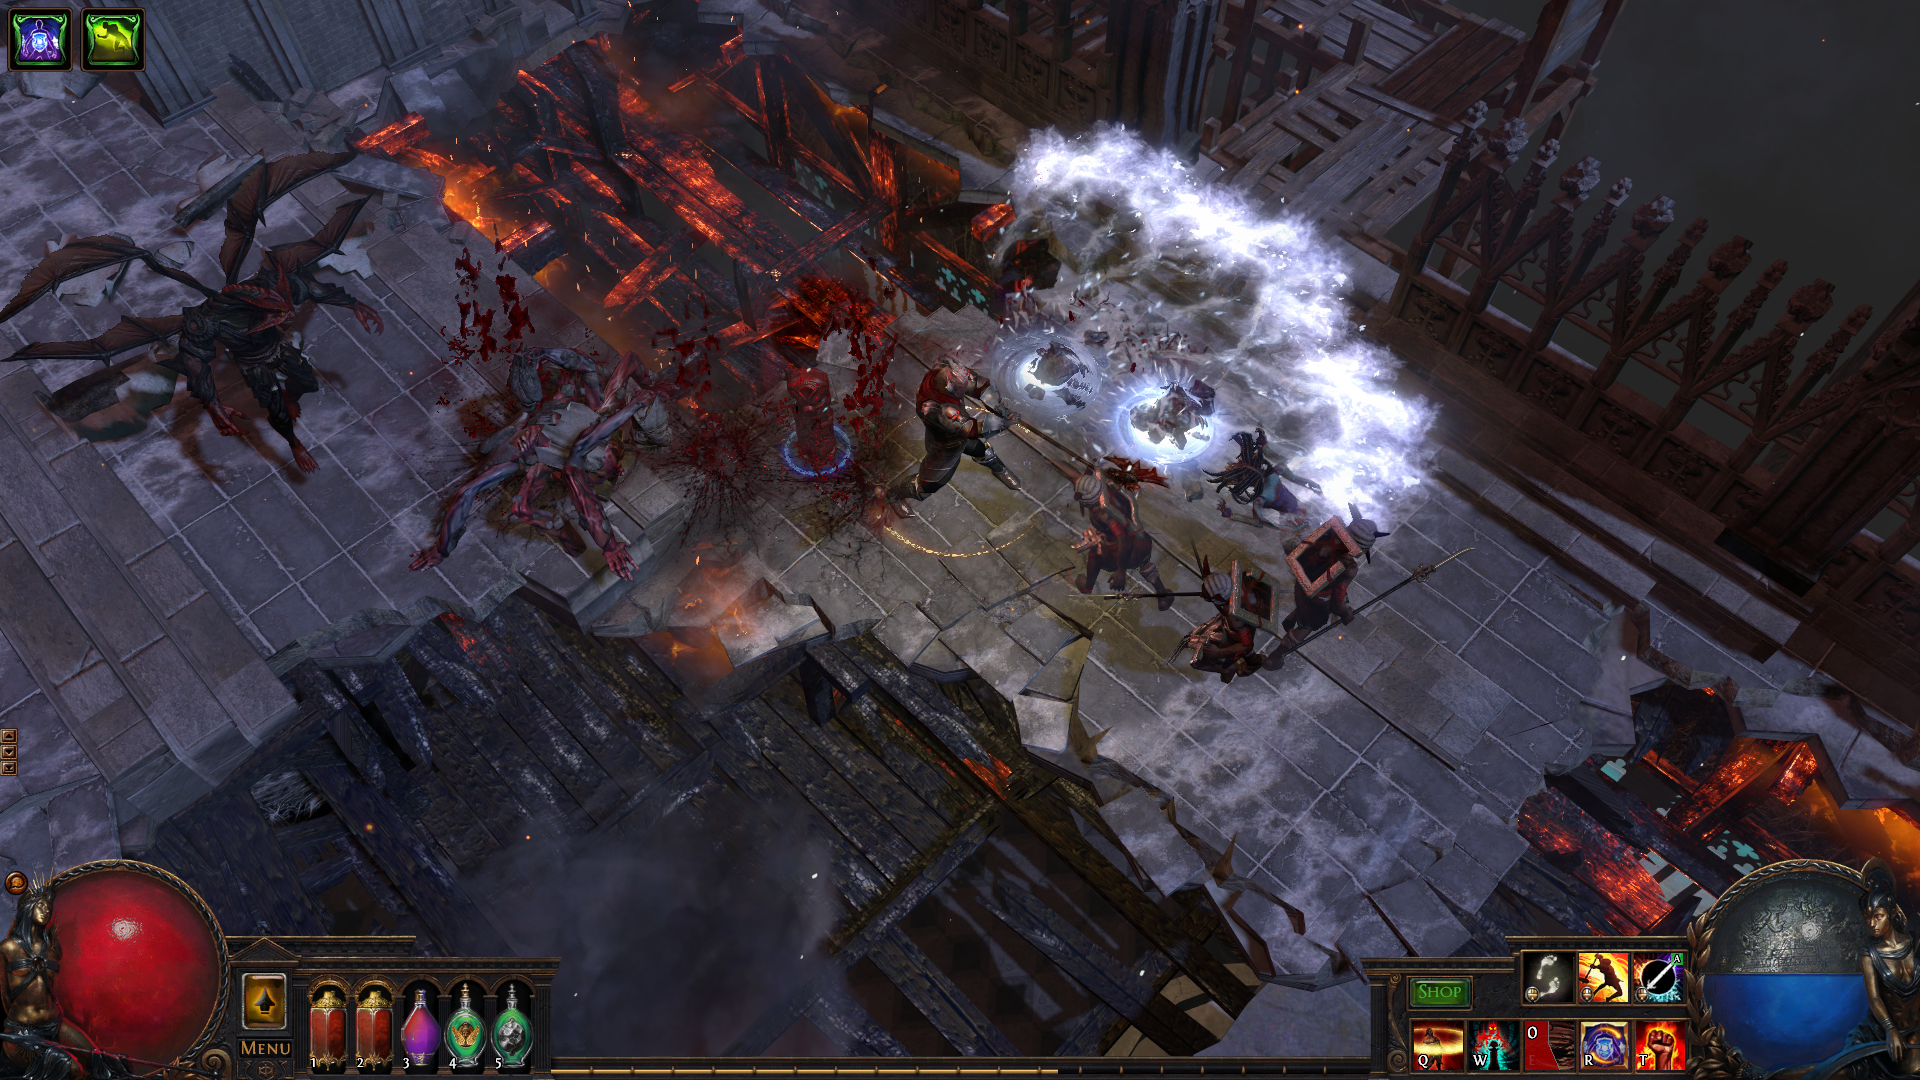 Path of Exile - The Fall of Oriath